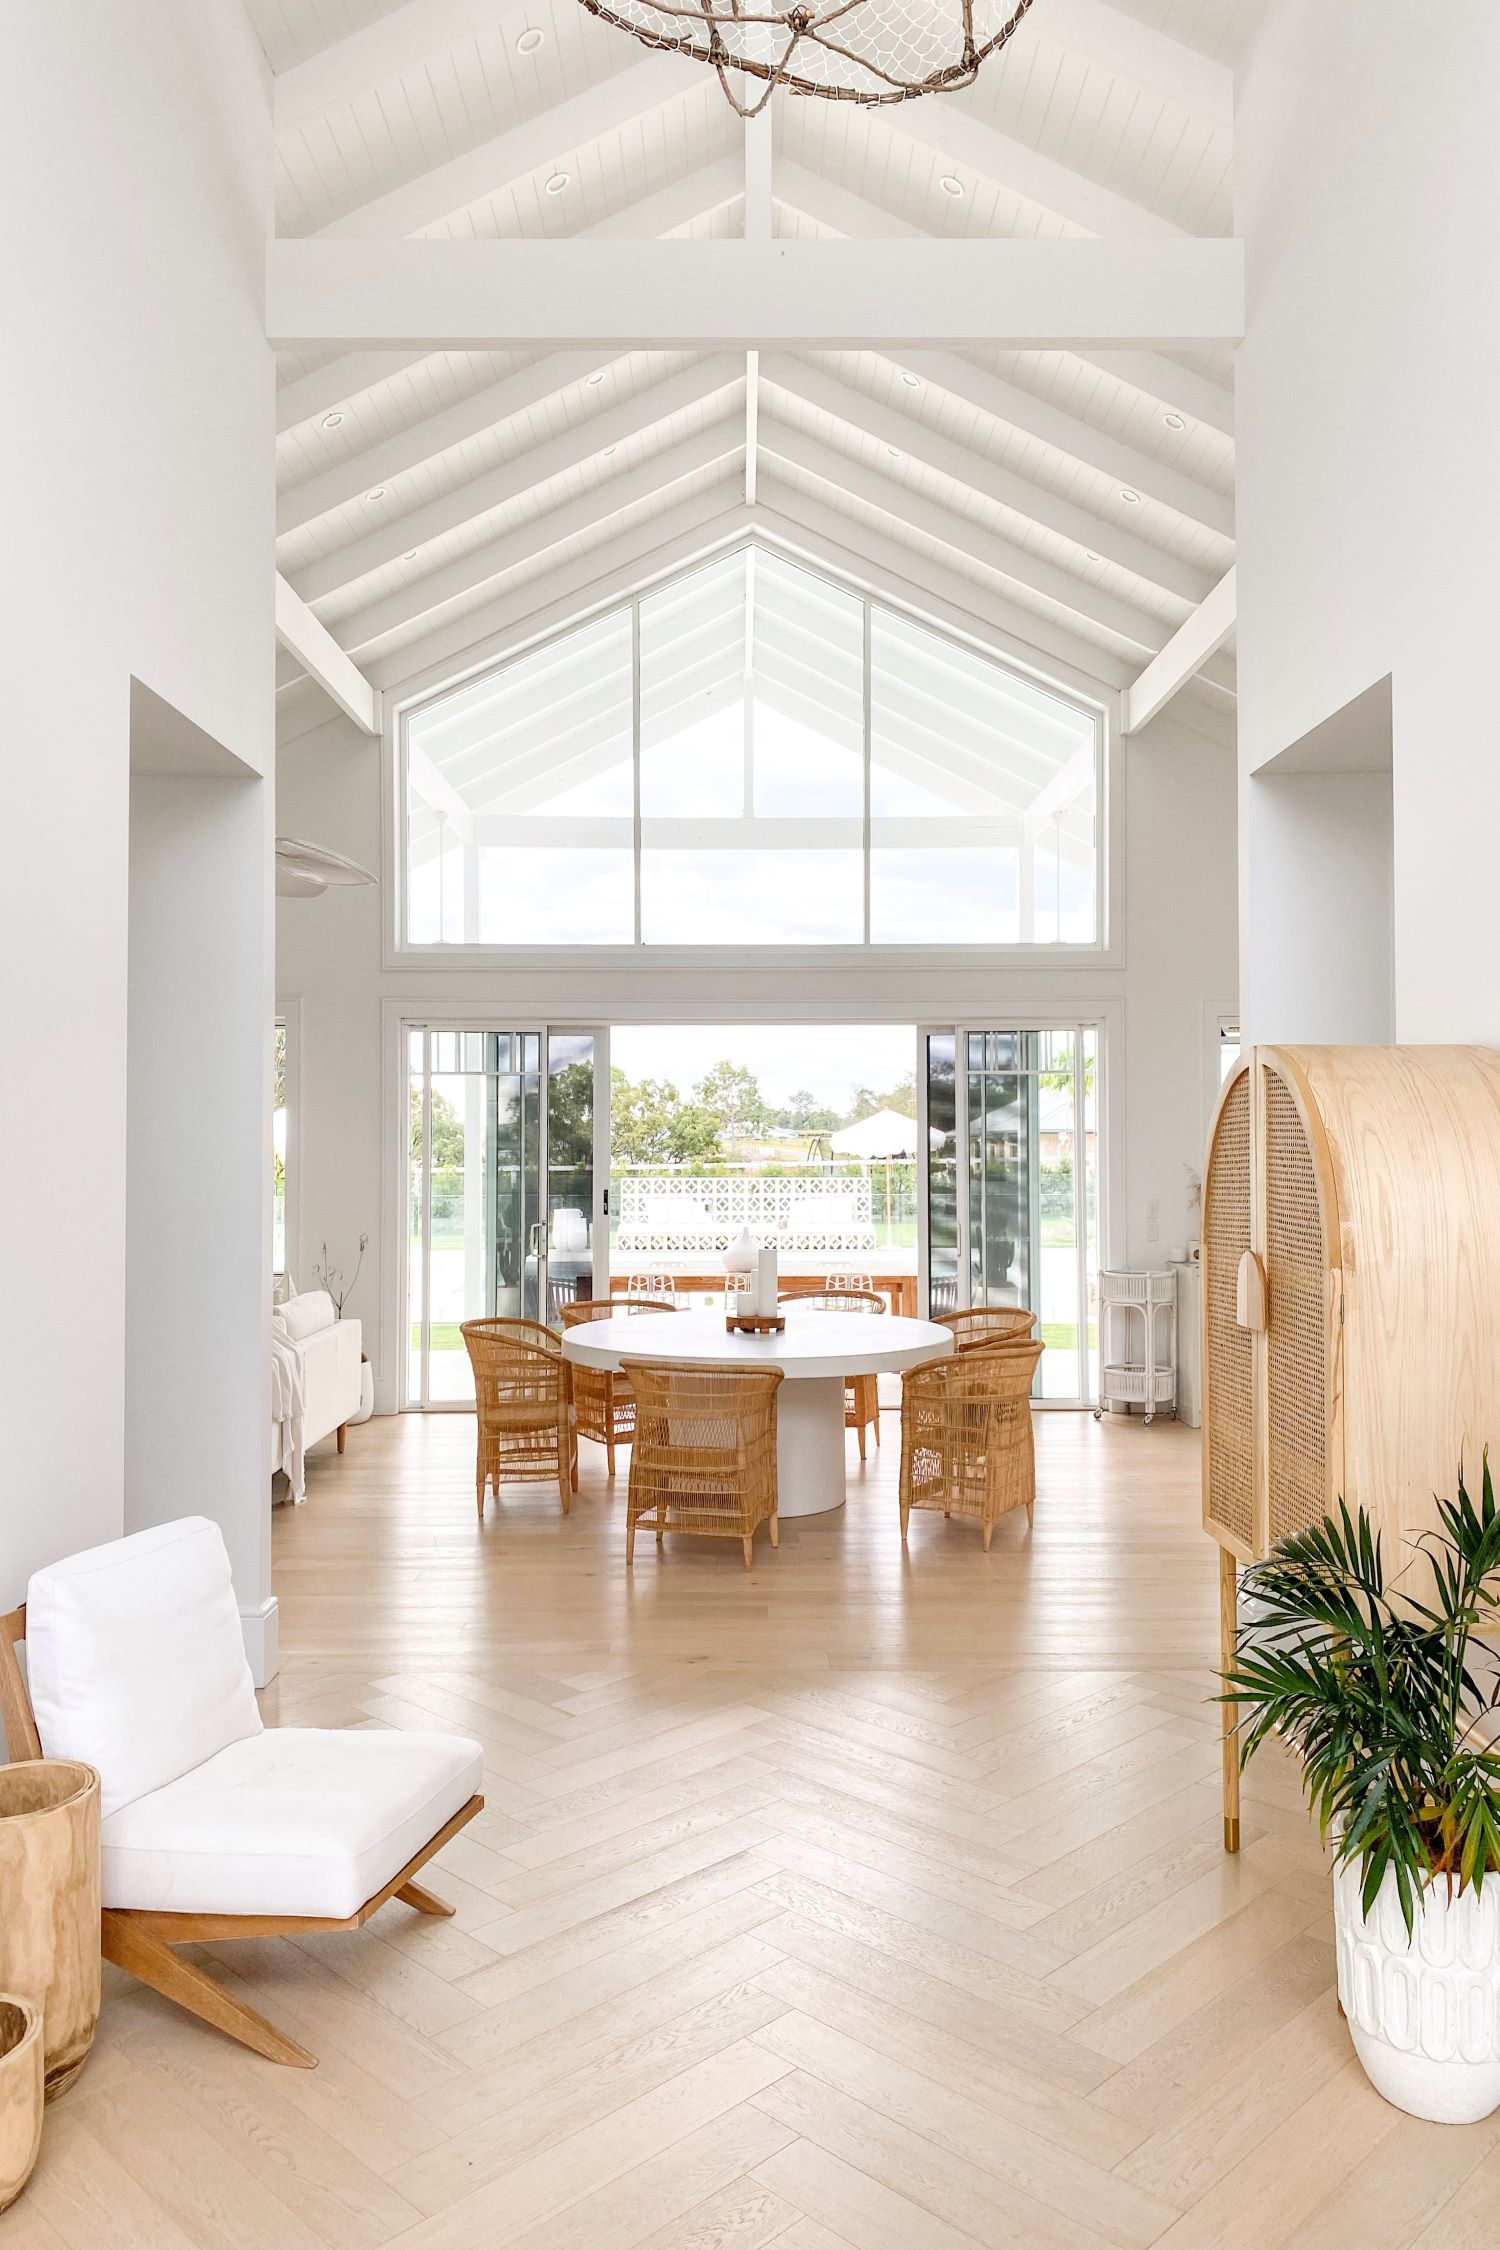 the-coastal-barn-dream-home-cathedral-ceilings